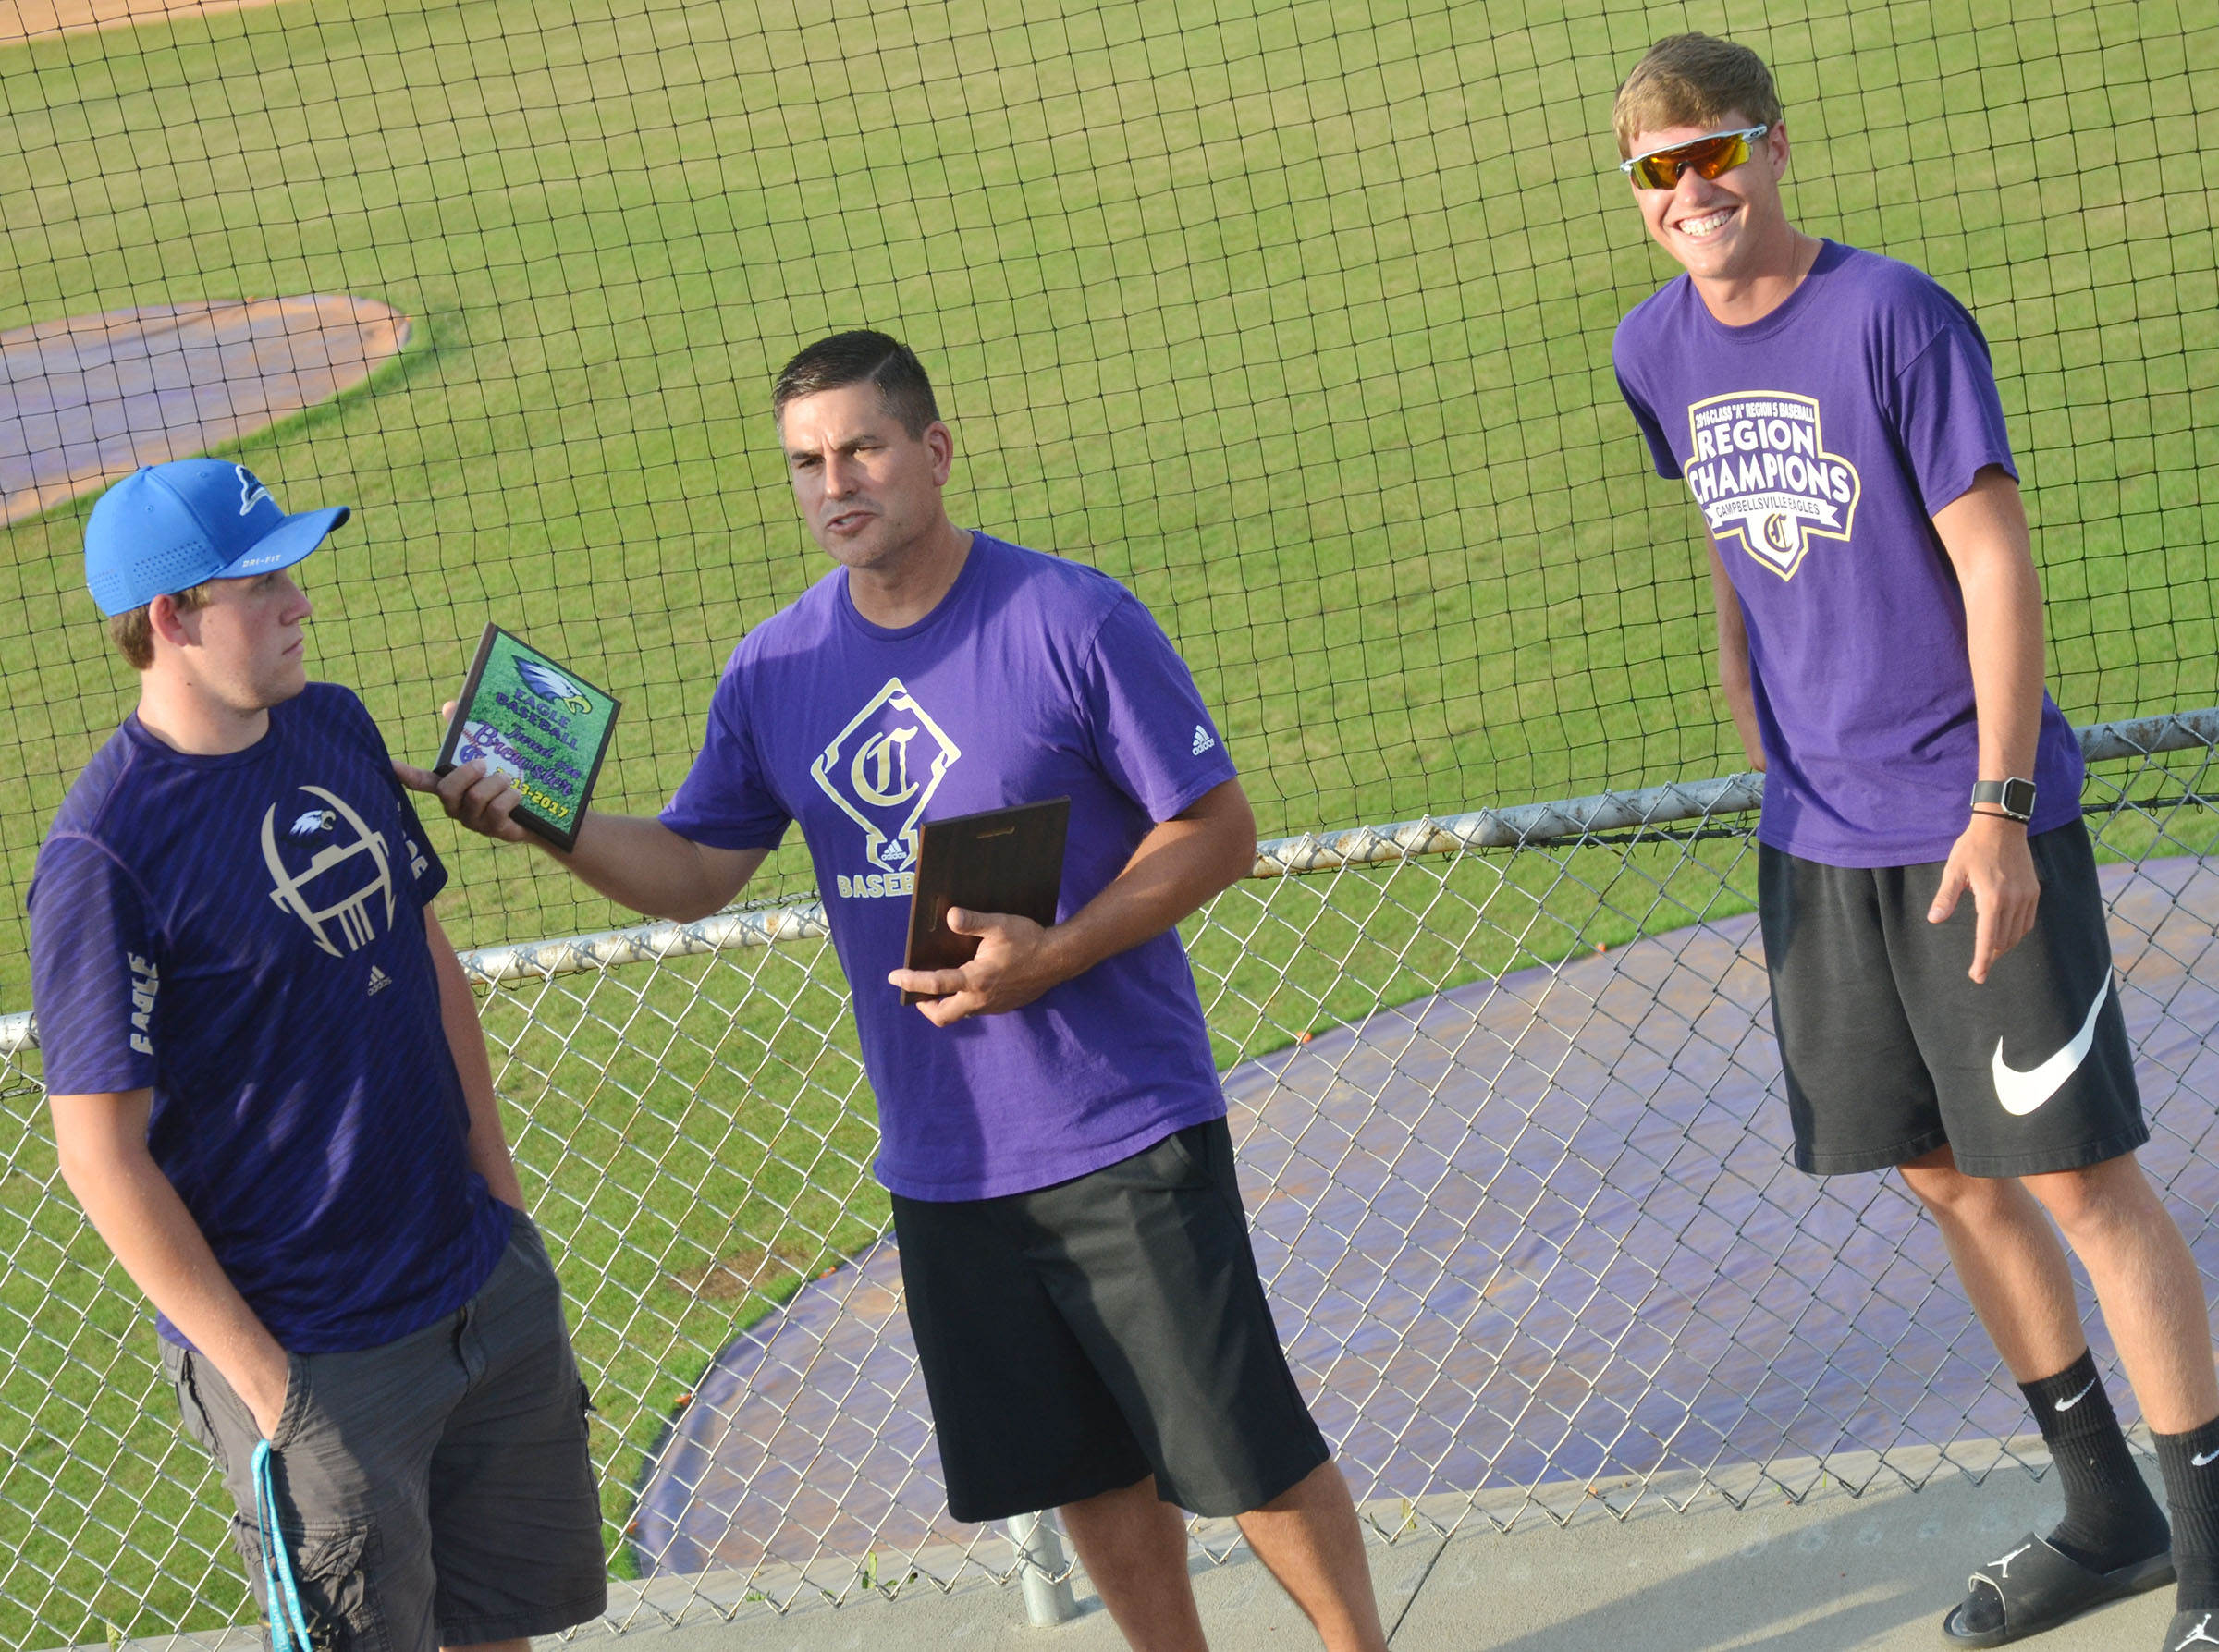 CHS head baseball coach Kirby Smith honors seniors Jared Brewster, at left, and Zack Bottoms for their dedication to their team.